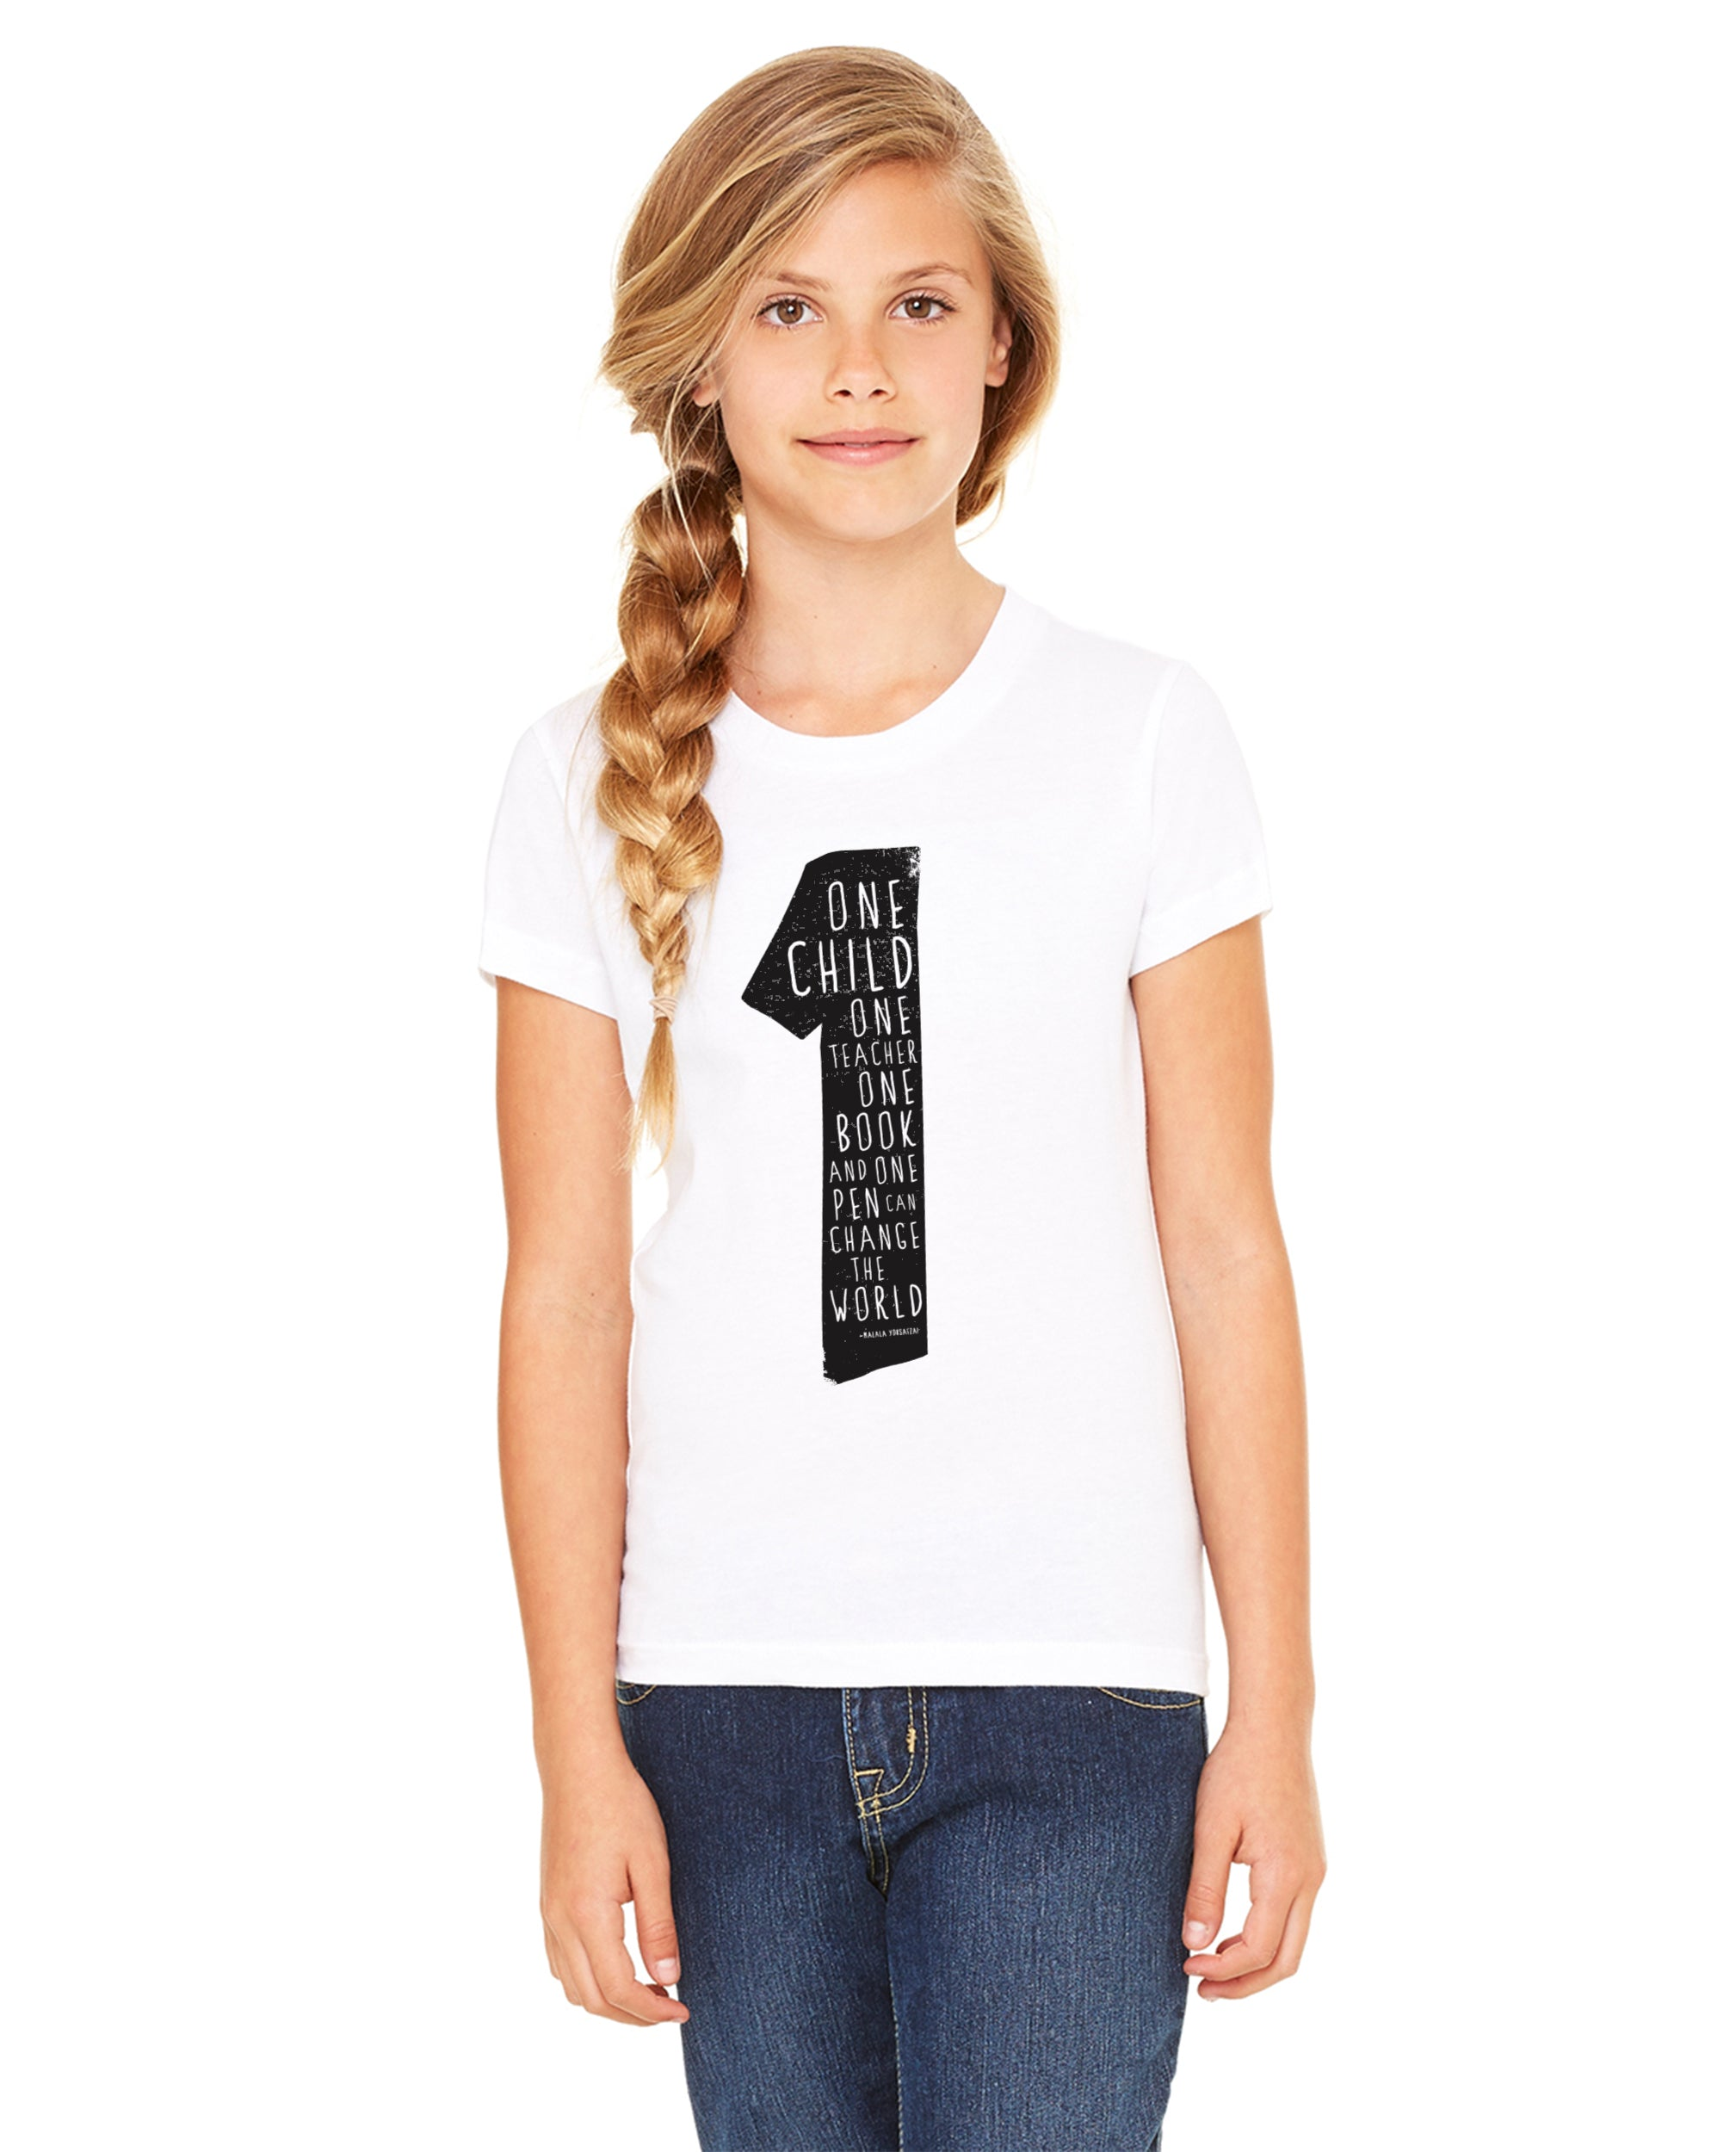 Malala Quote Girls Premium Short Sleeve Crew